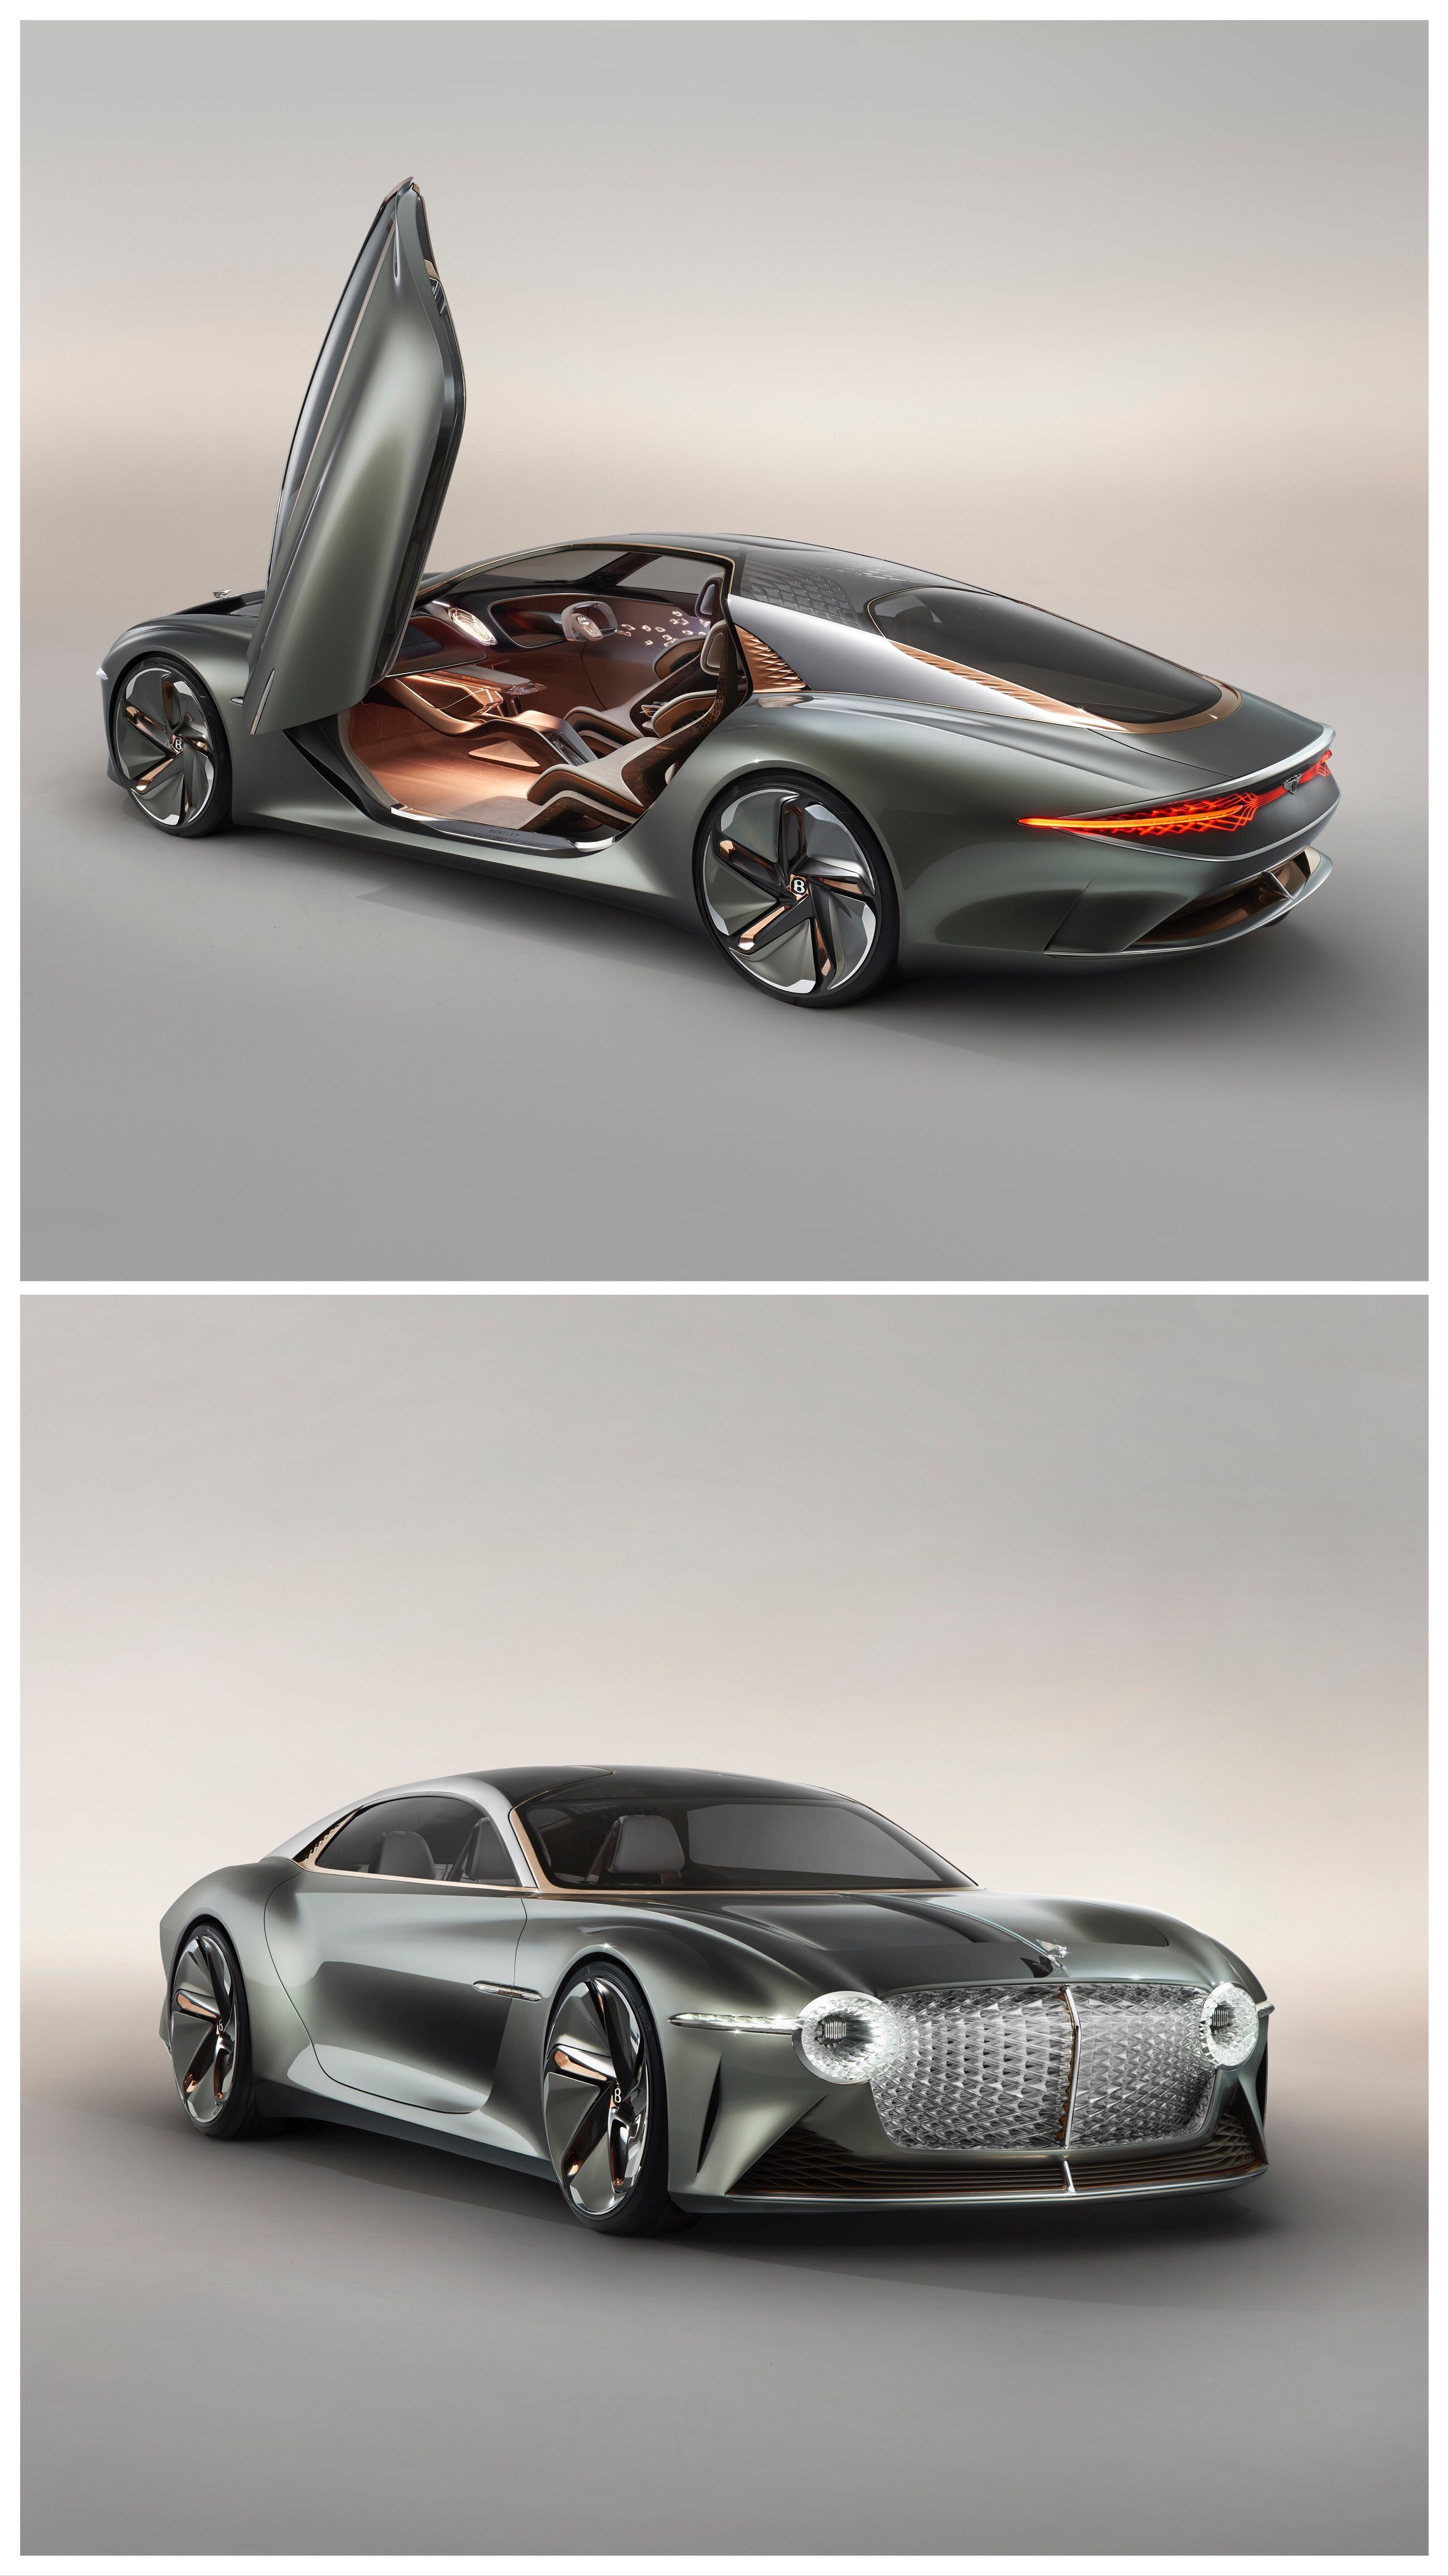 Photo of Bentley EXP 100 GT Concept: The Gorgeous Future of Luxury